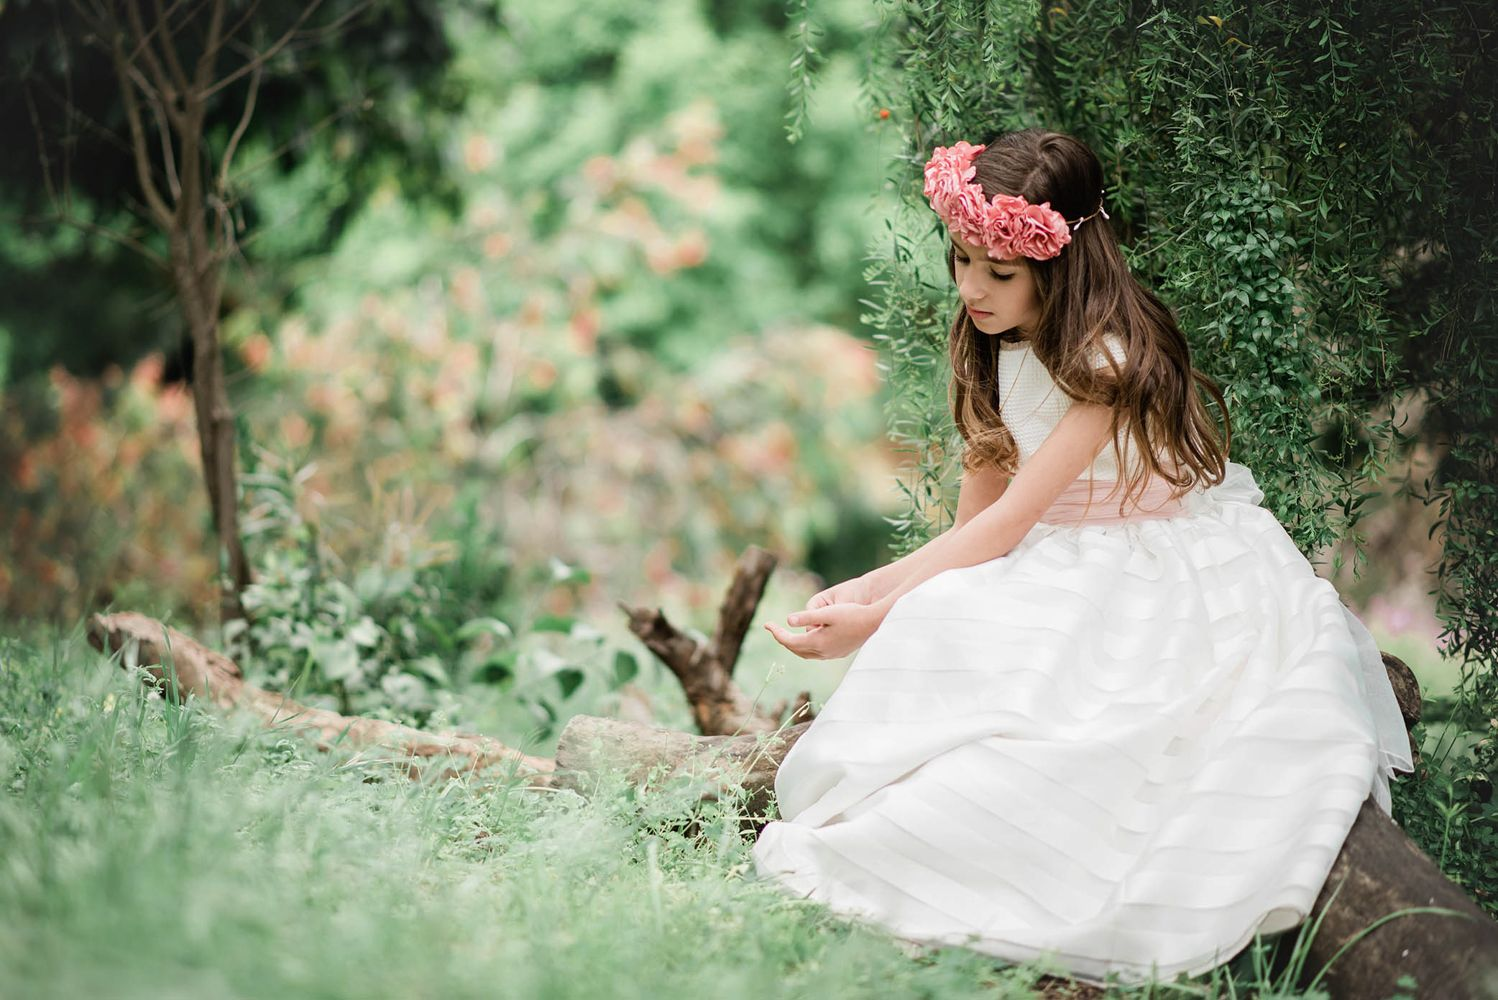 Girl in communion dress sitting in a park with flowers